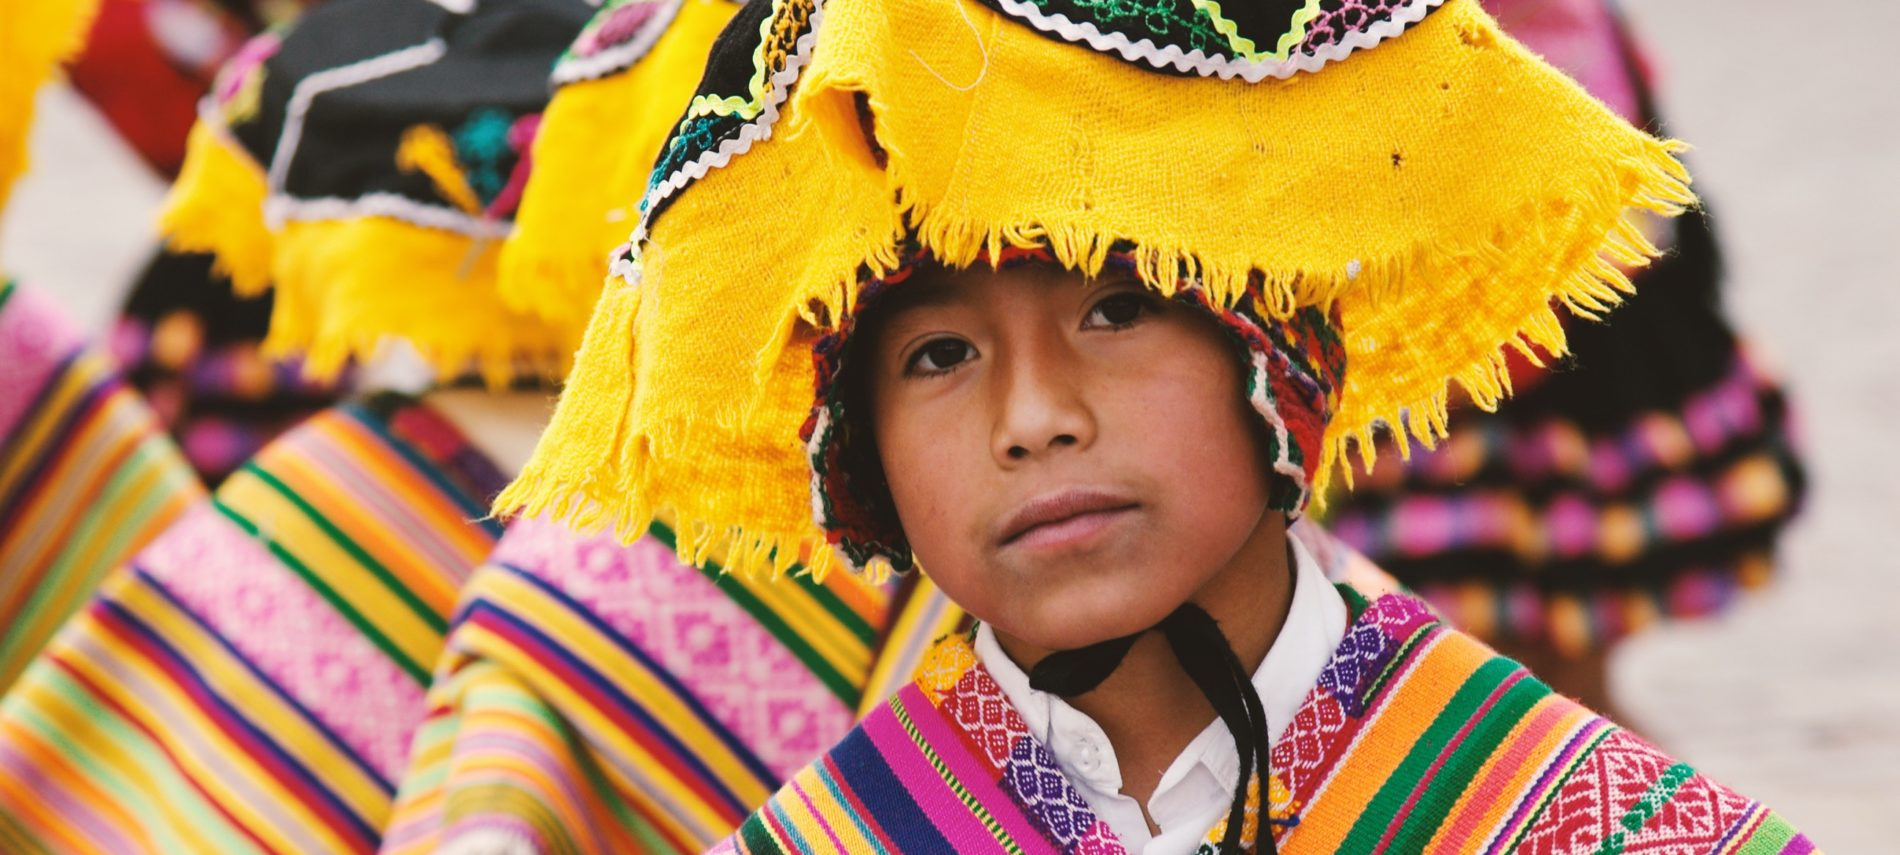 Mexican boy in yellow, green and black floppy head covering and colorful shawl. Similarly dressed figures behind him.